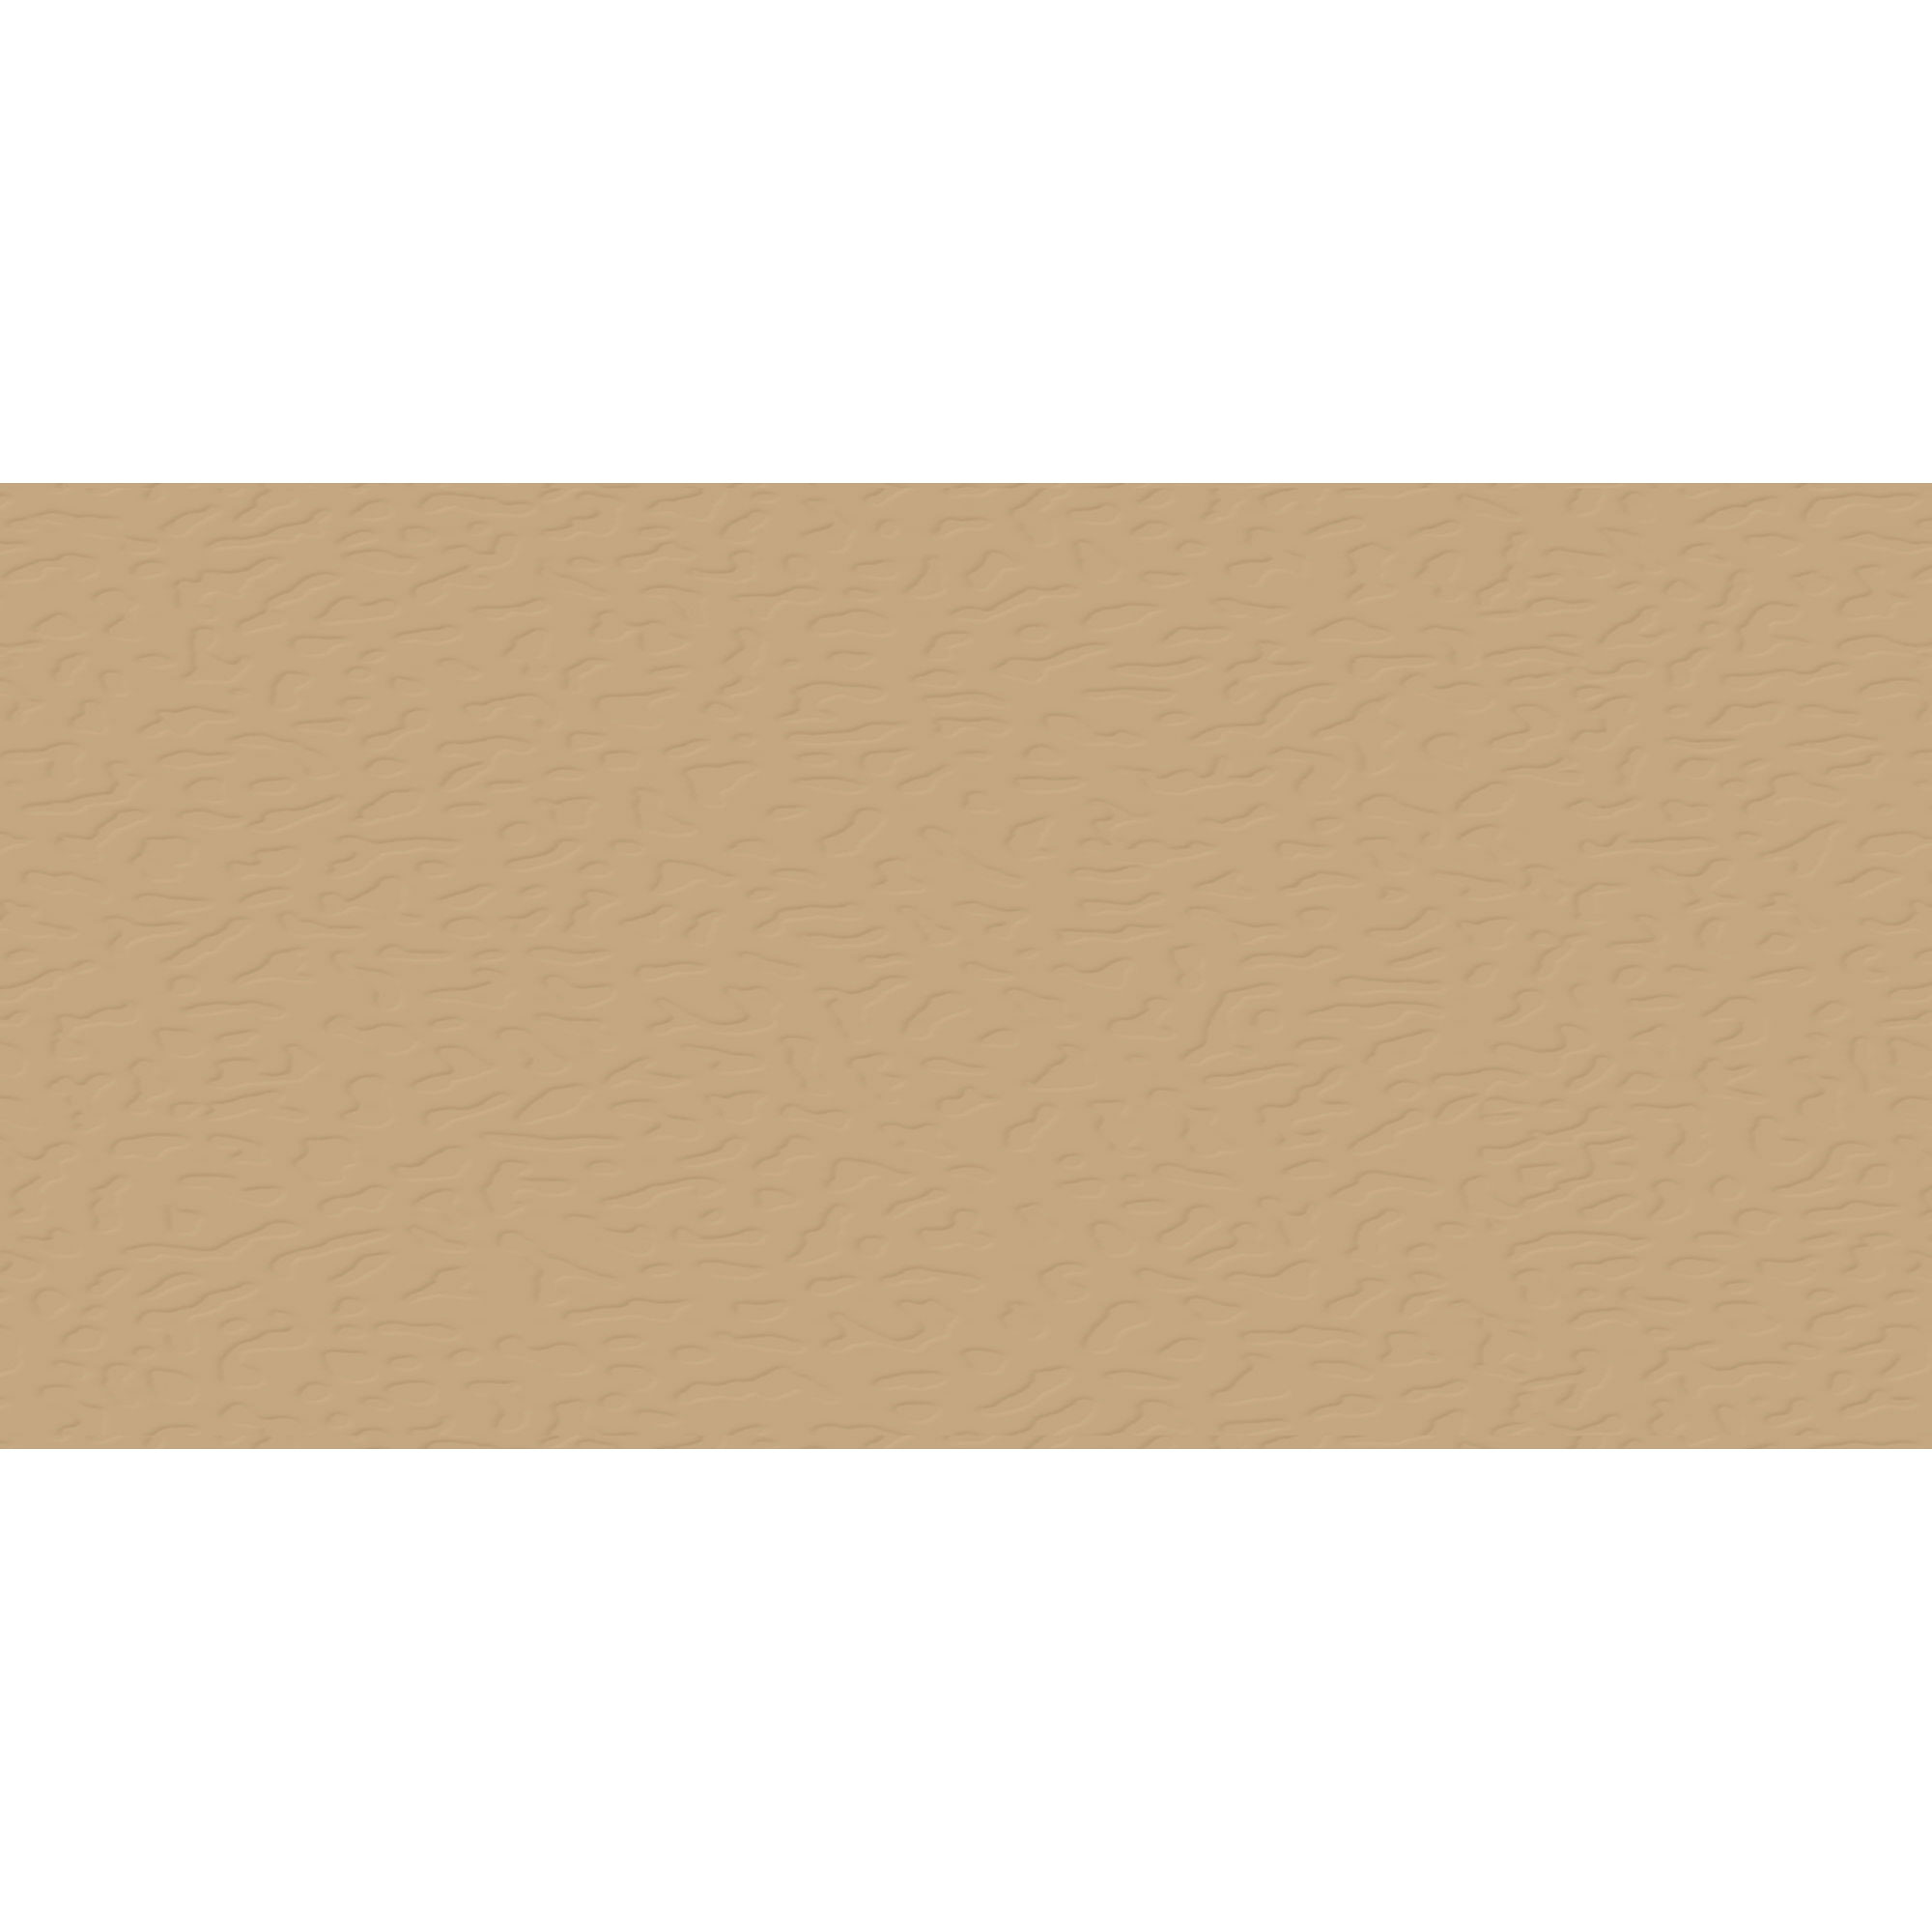 Roppe Designers Choice Hammered 6 x 12 Harvest Yellow